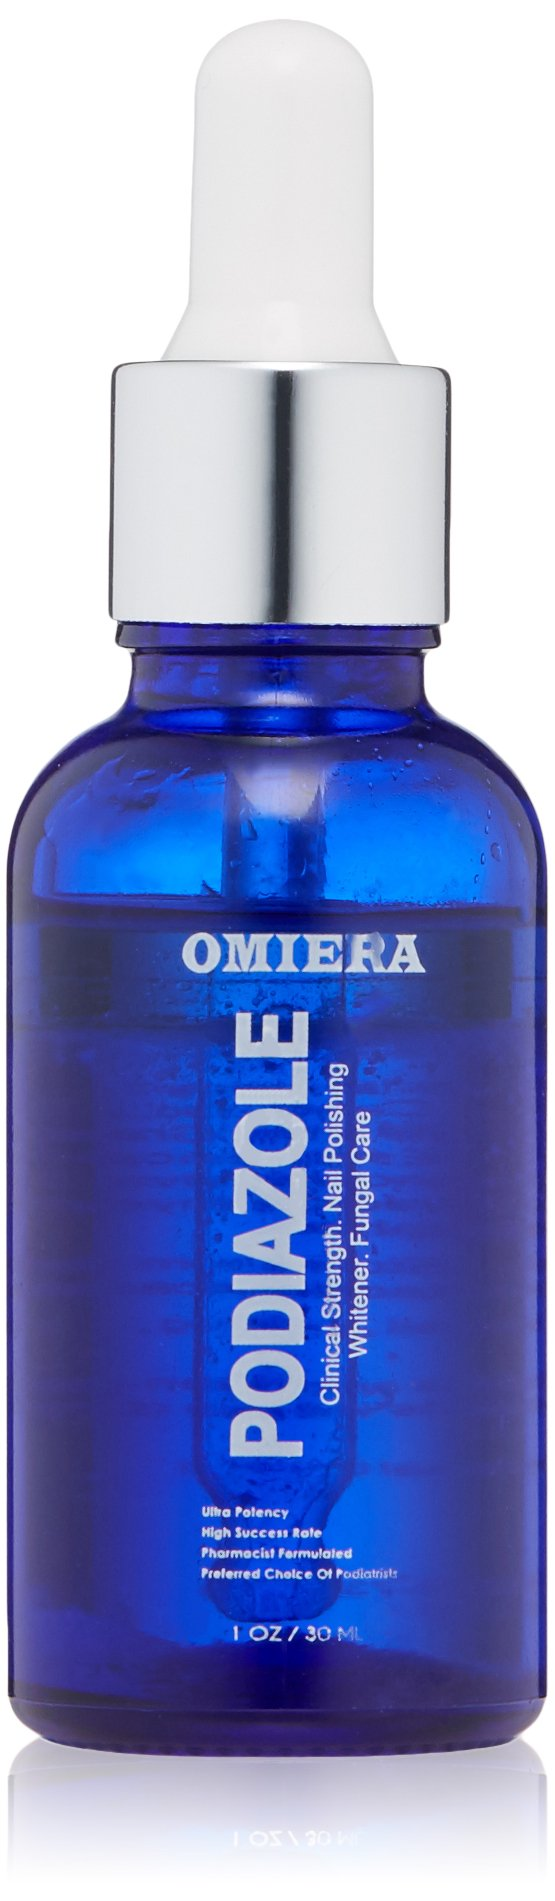 Omiera Toenail Fungus Treatment, Nail Fungus Treatment, Fungi Nails, Toe Fungus, Fingernail Fungus, Antifungal Nail Treatment - Restore Nails To Their Natural State with Podiazole, 1.0 fl. oz